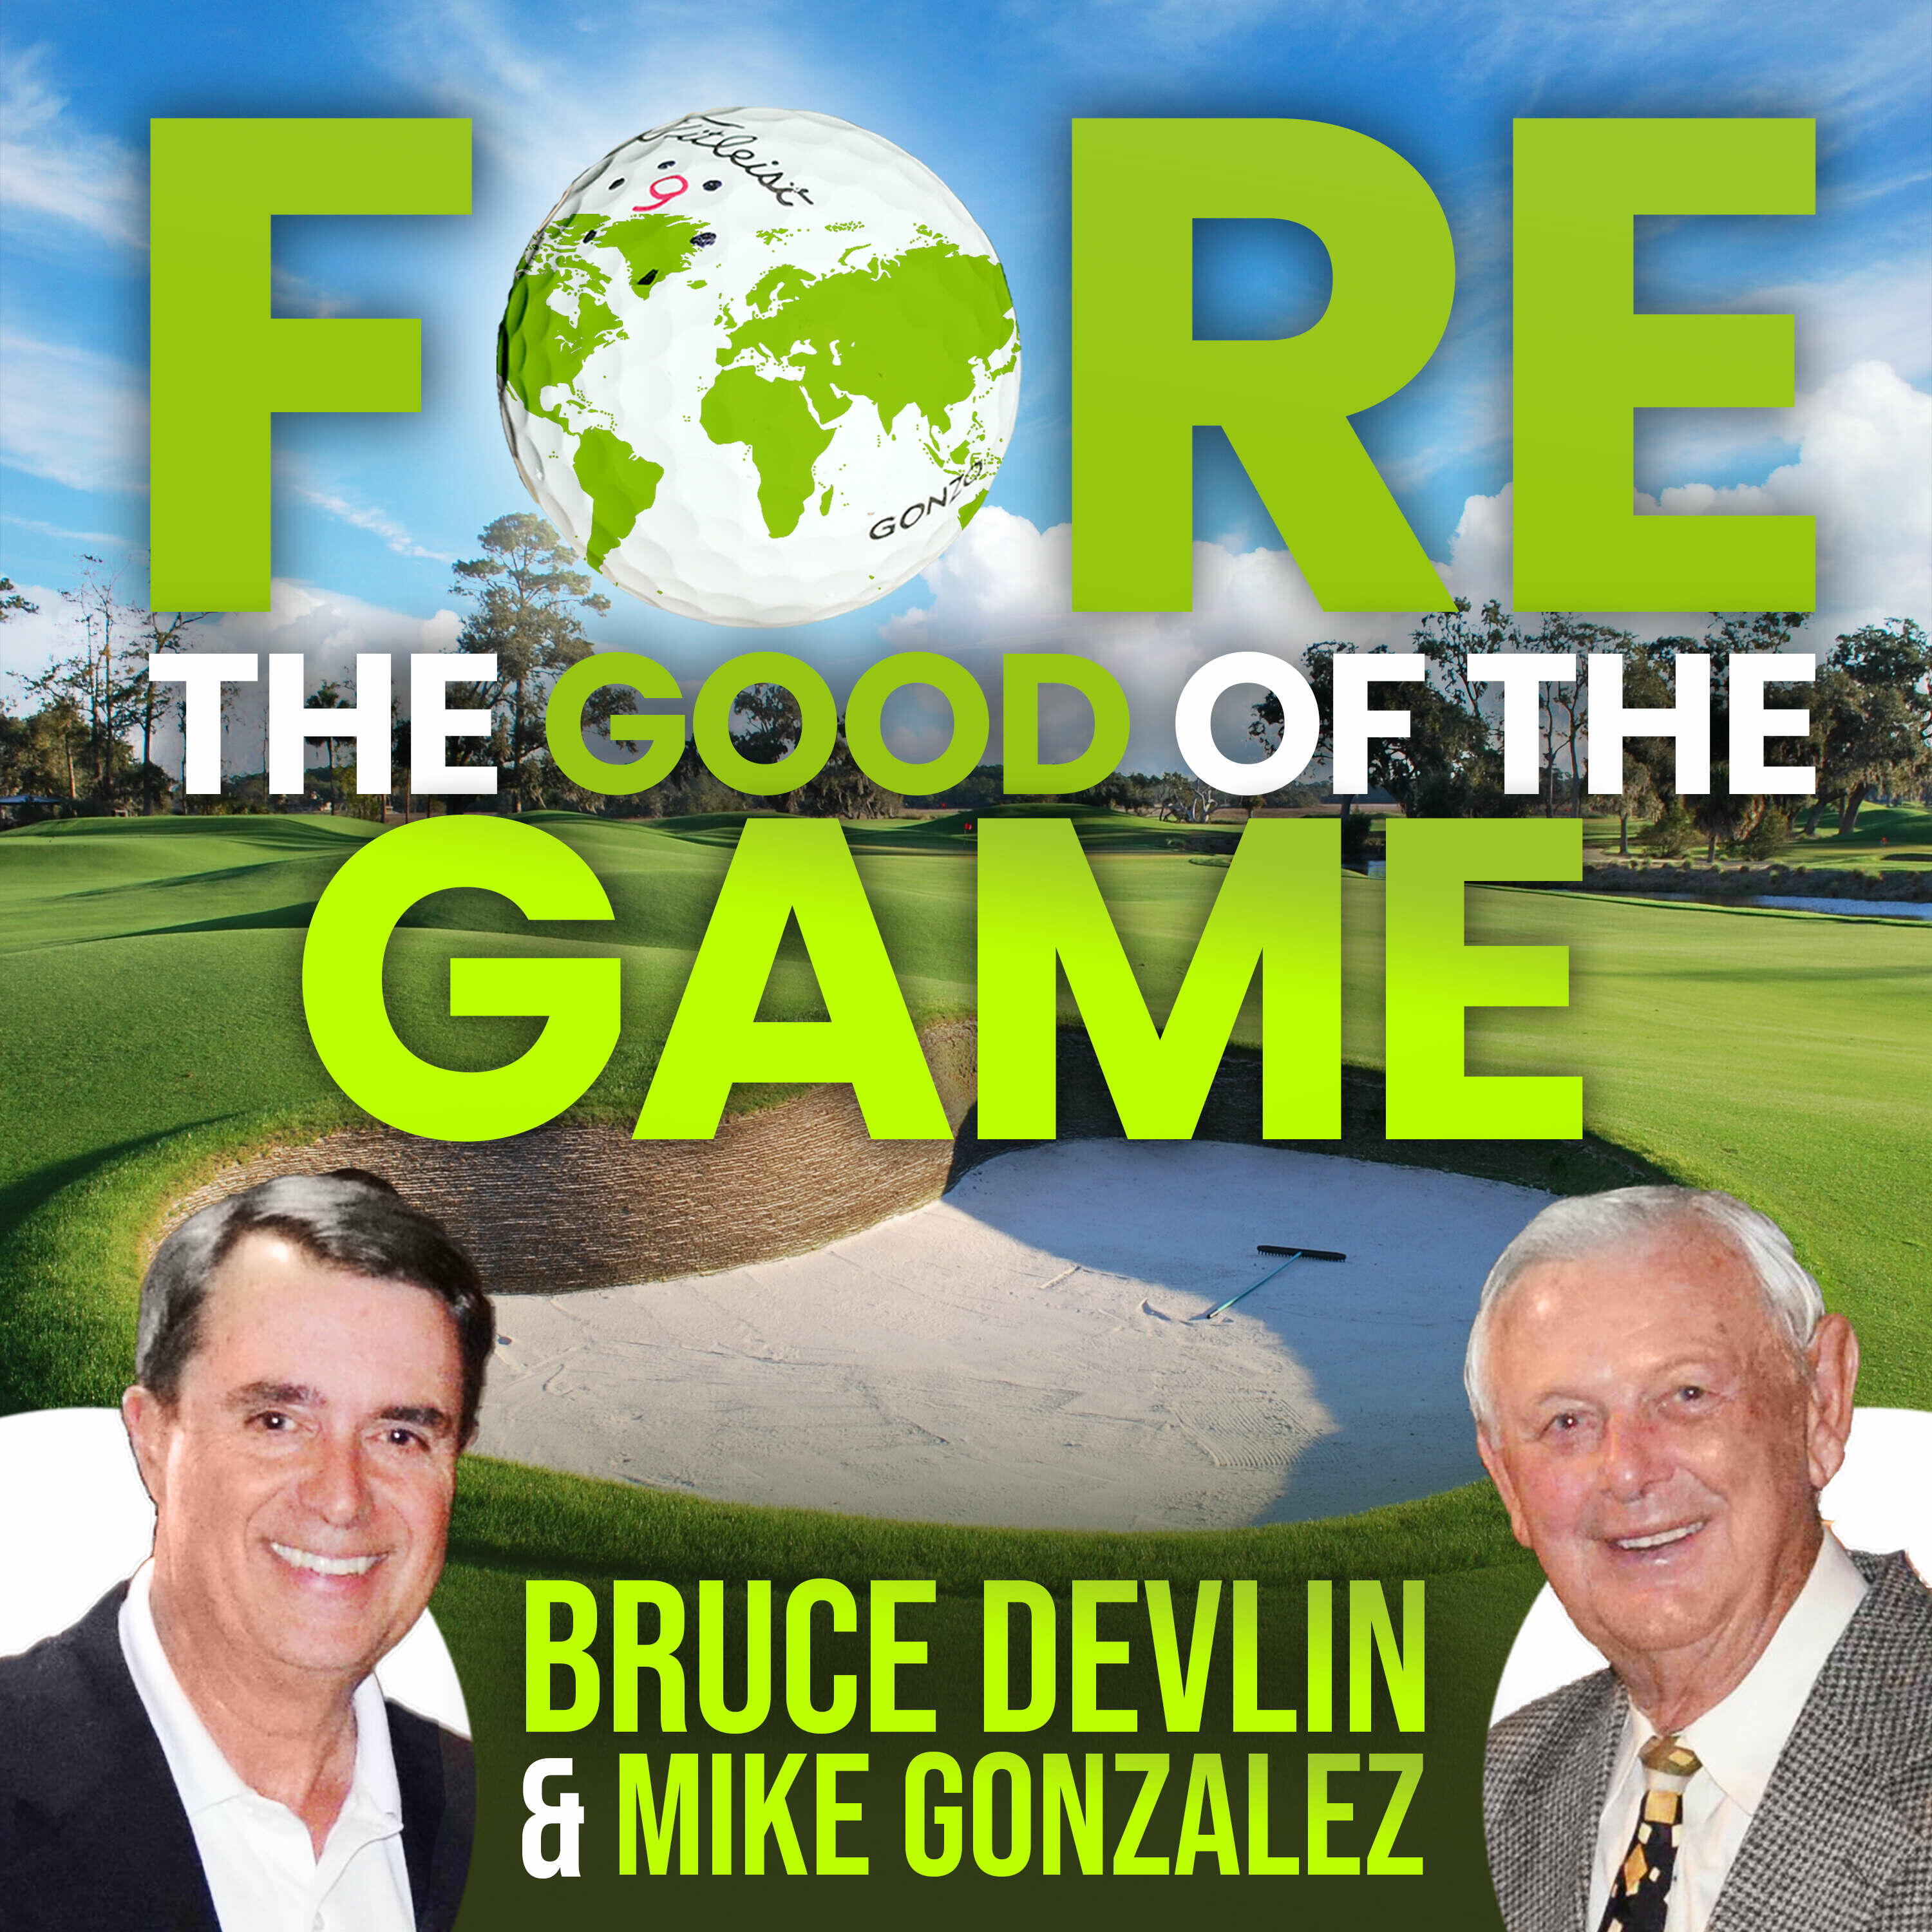 FORE the Good of the Game